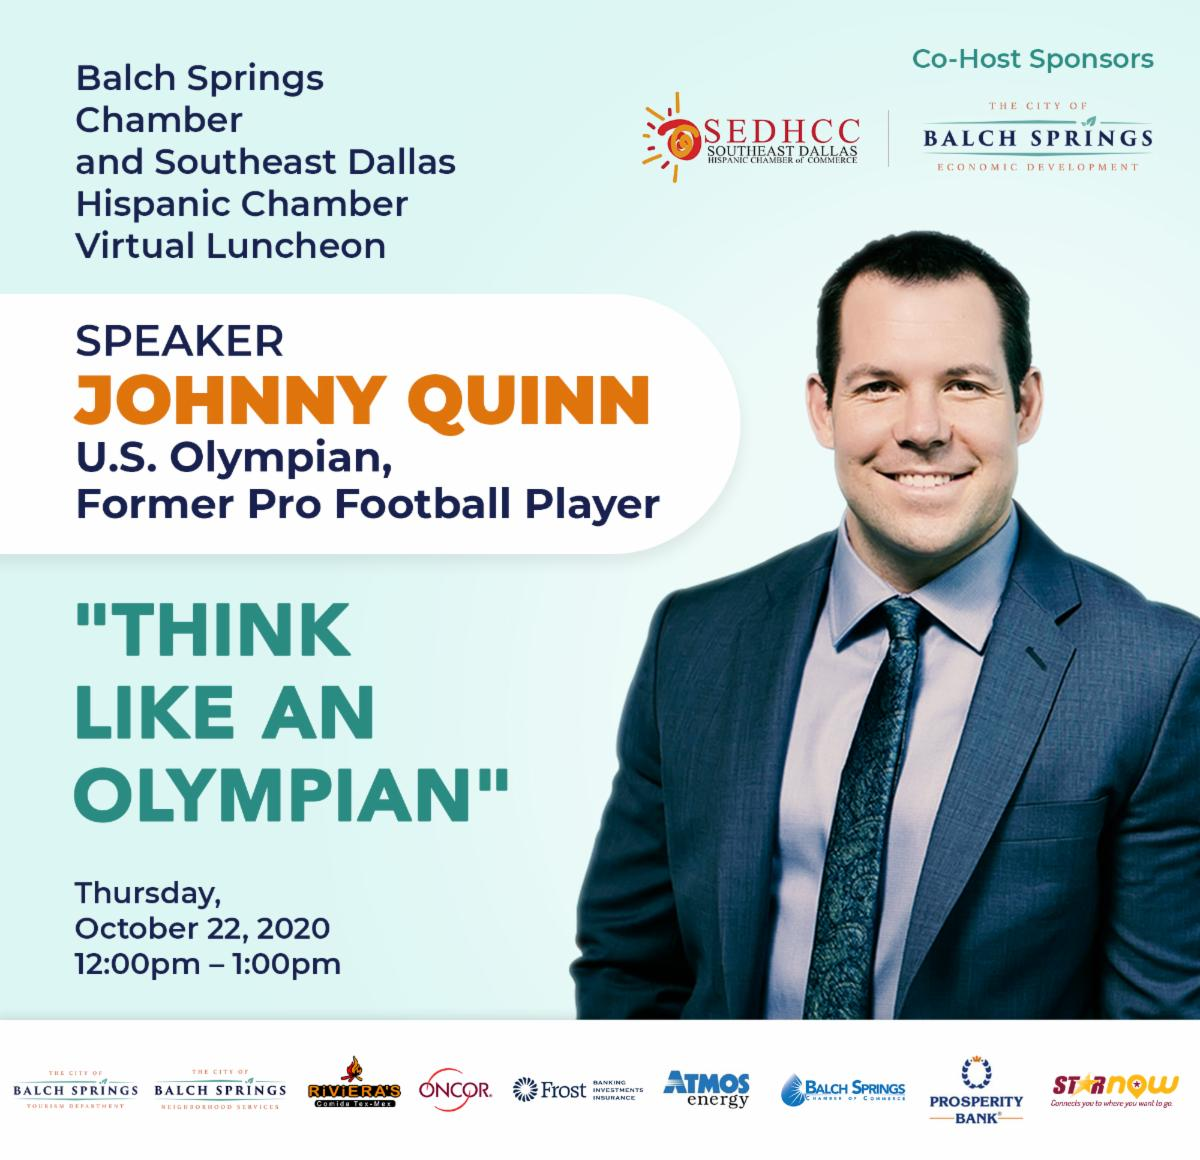 Johnny Quinn Flyer.JPG